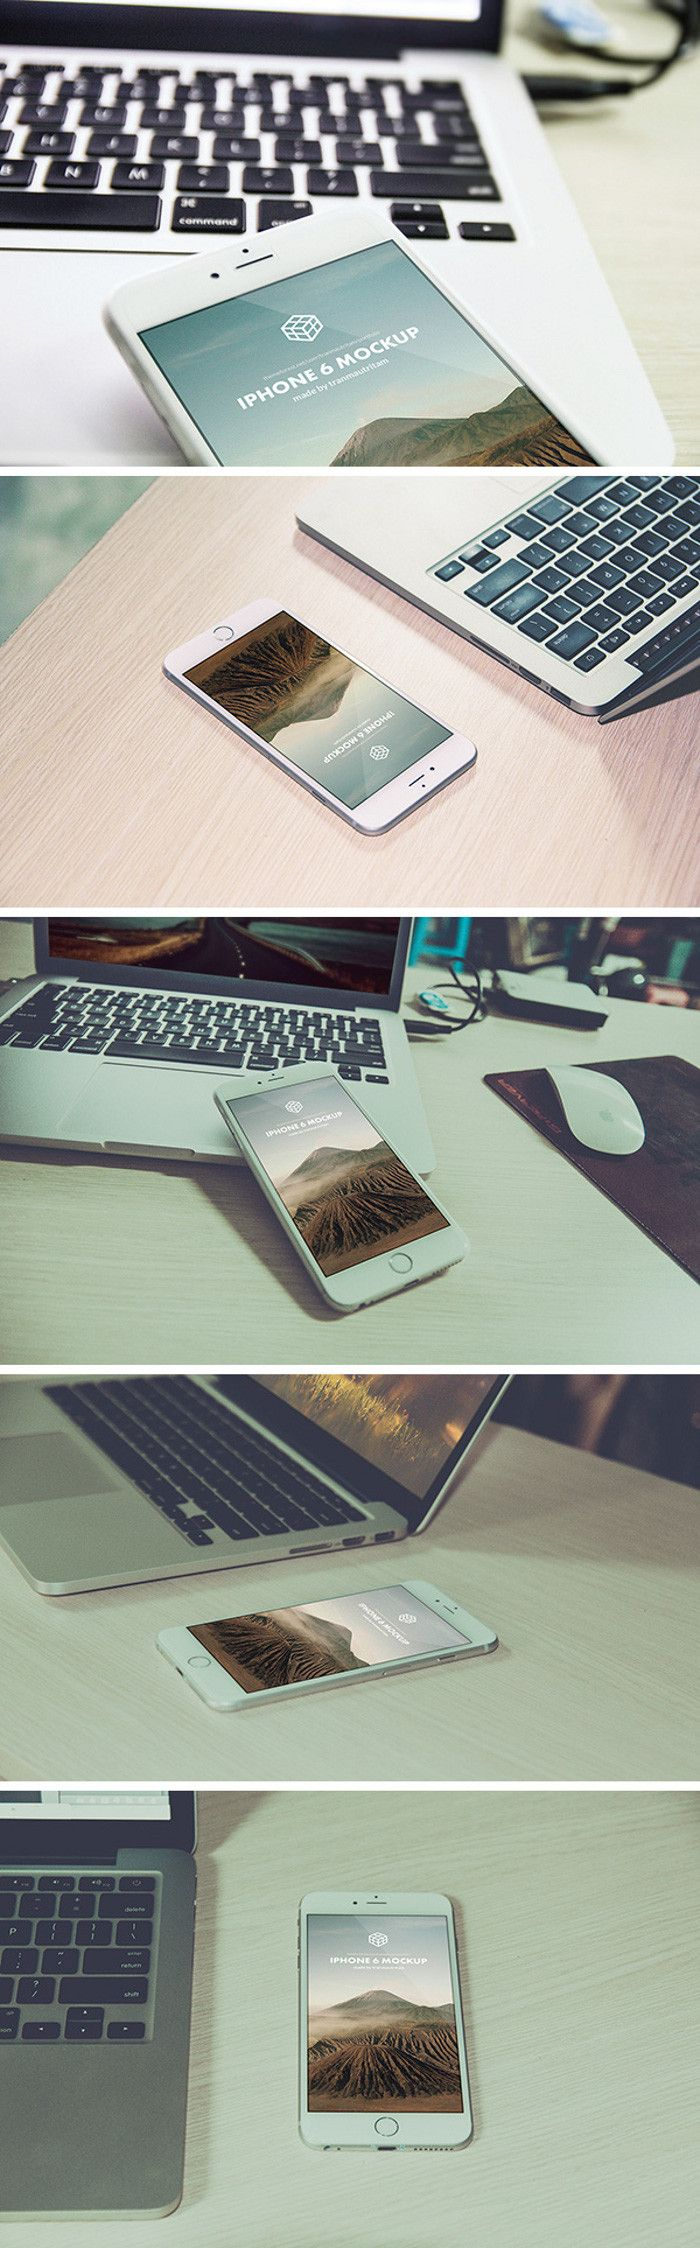 Free 5 Photorealistic iPhone 6 Plus PSD Mockups by Tan Mau Tri Tam #iphone6 #mockups #psd